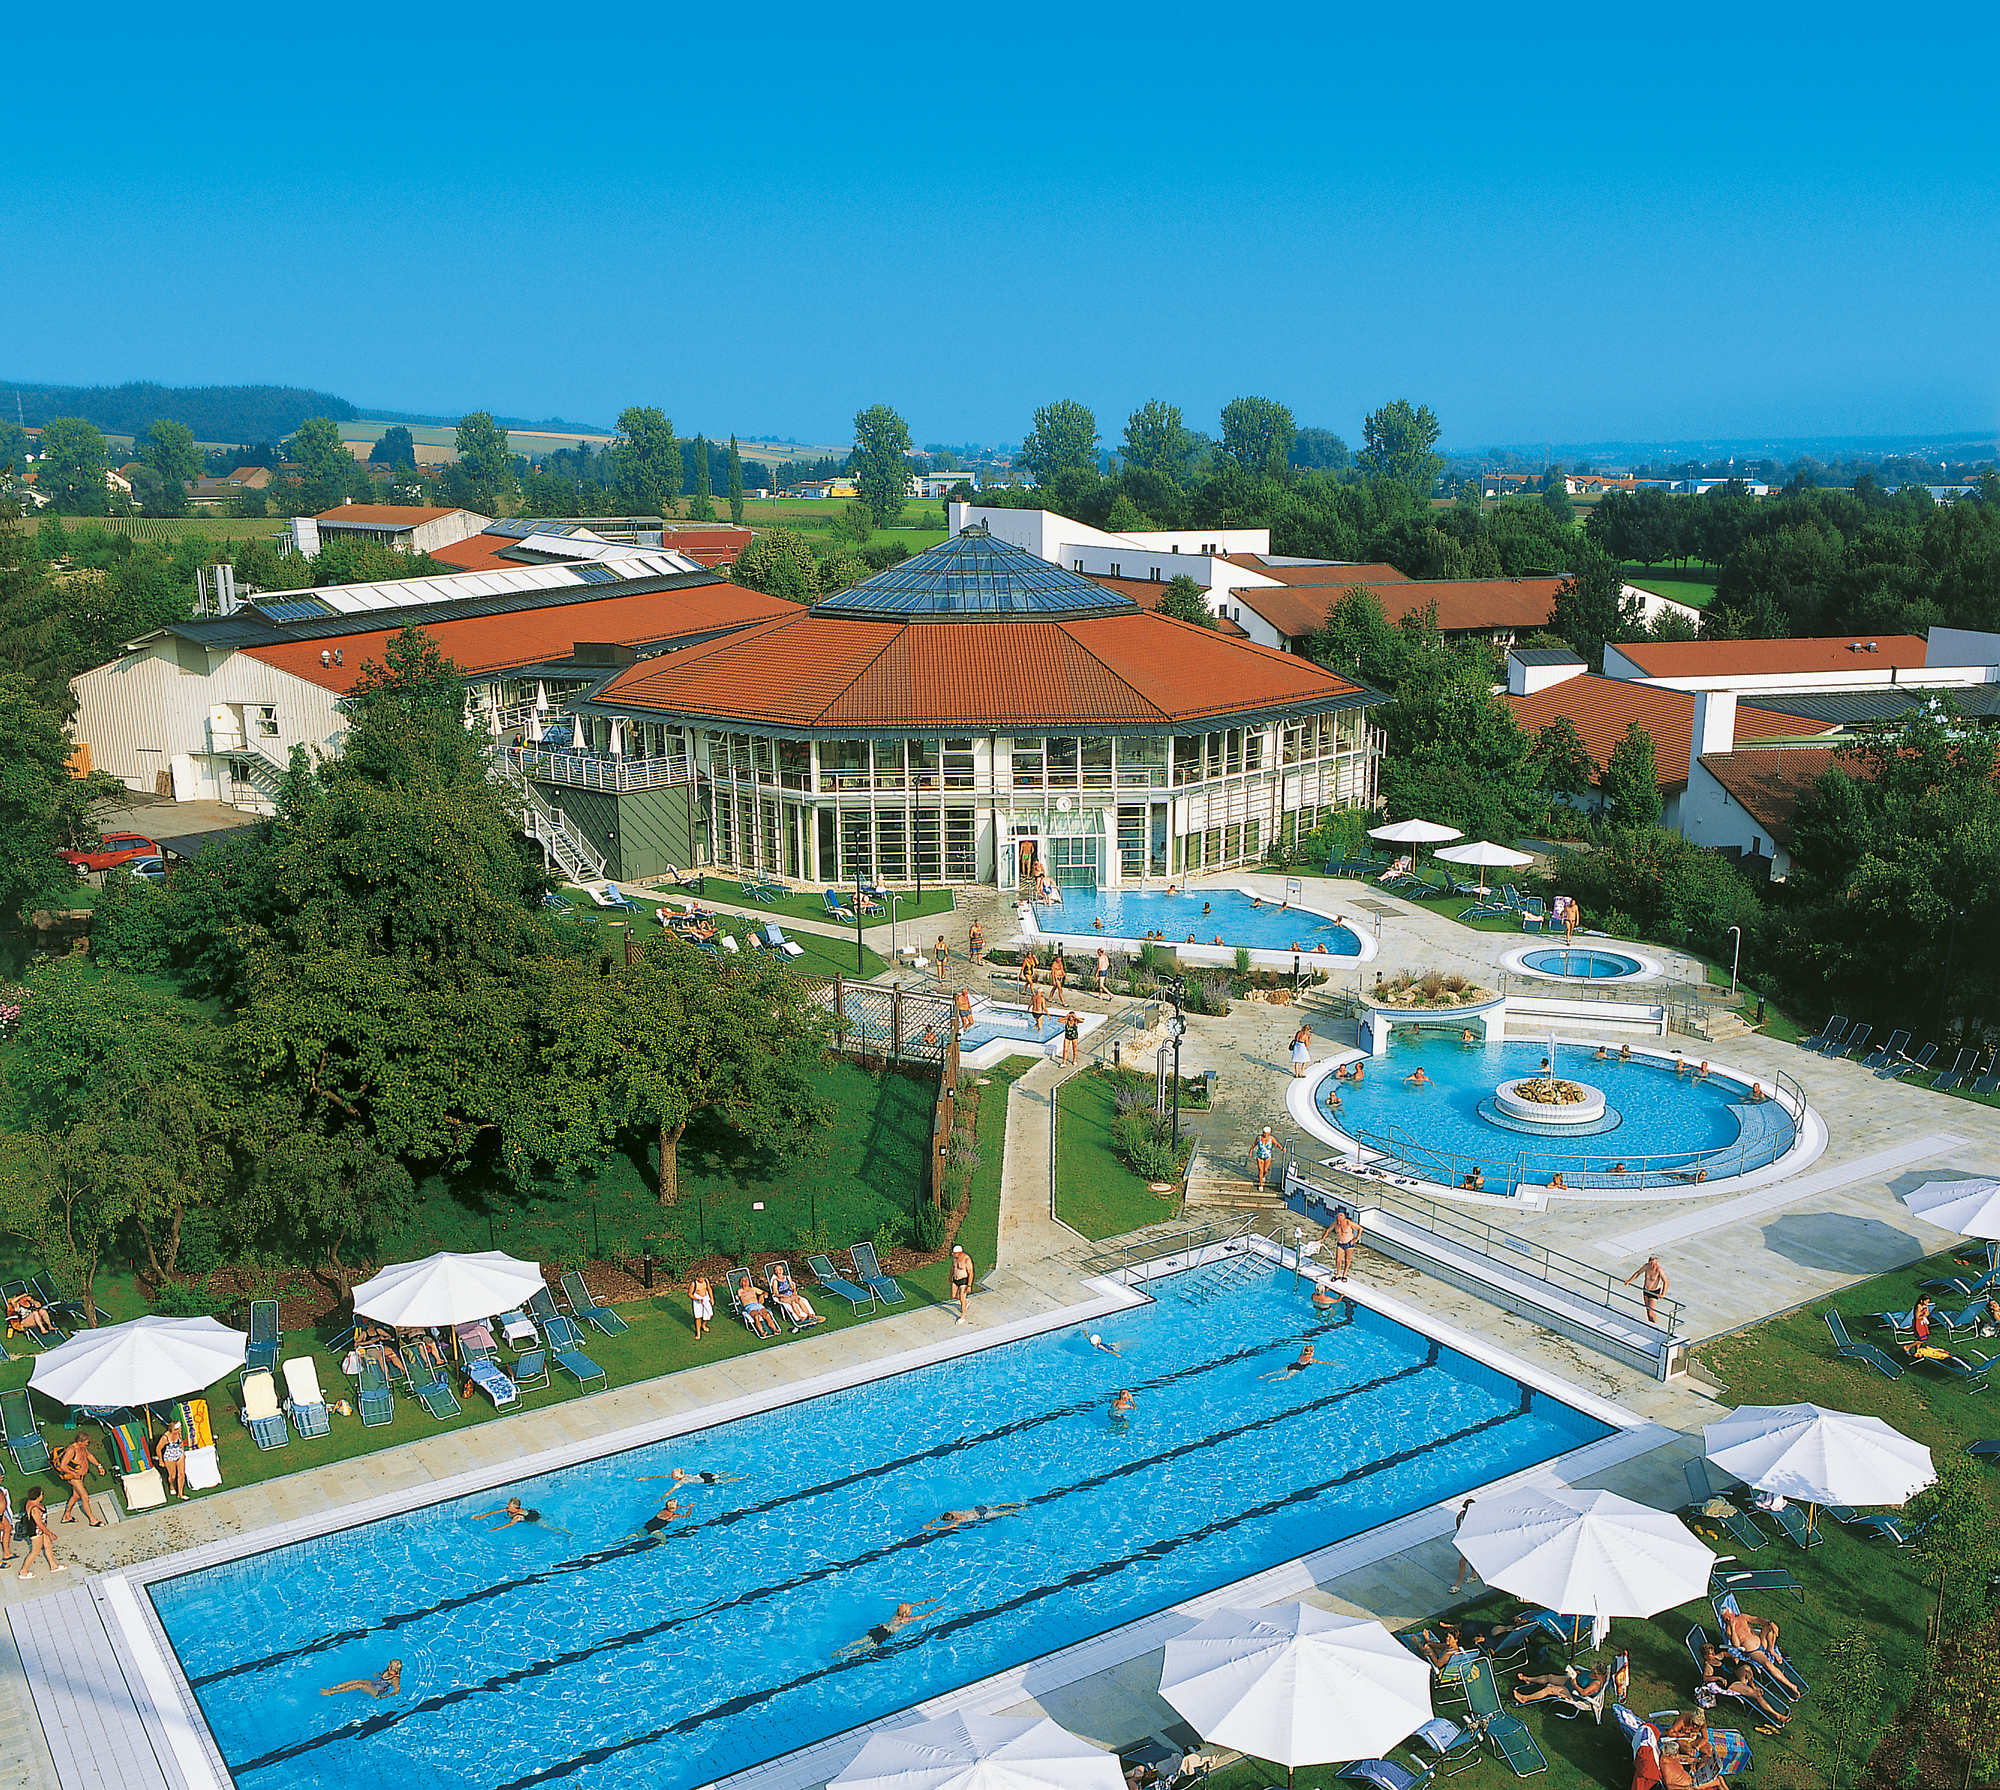 Hotel Therme Bad Birnbach